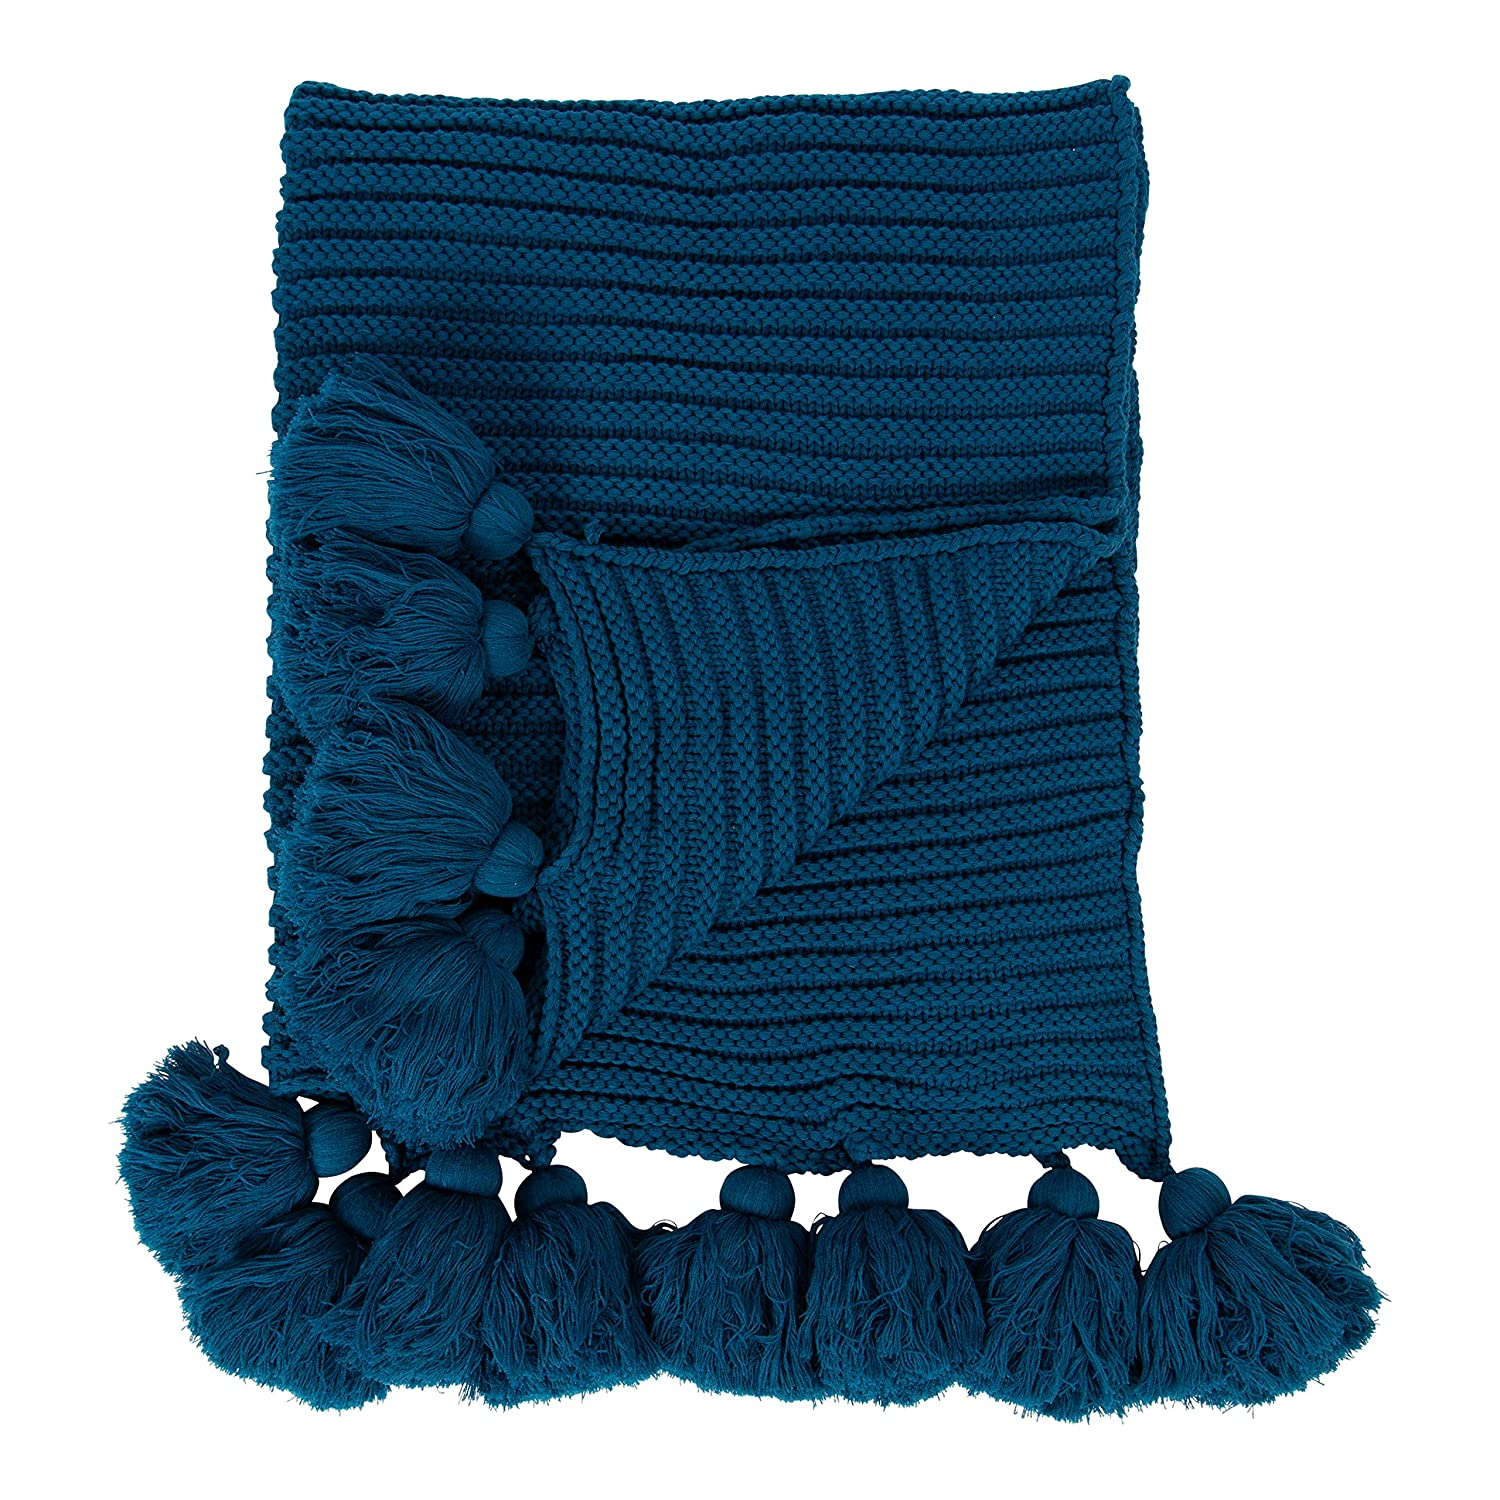 Kate and Laurel Tassey Large Chunky Ribbed Knit Throw Blanket with  Oversized Corner Tassels, 80 x 50-inches, Teal